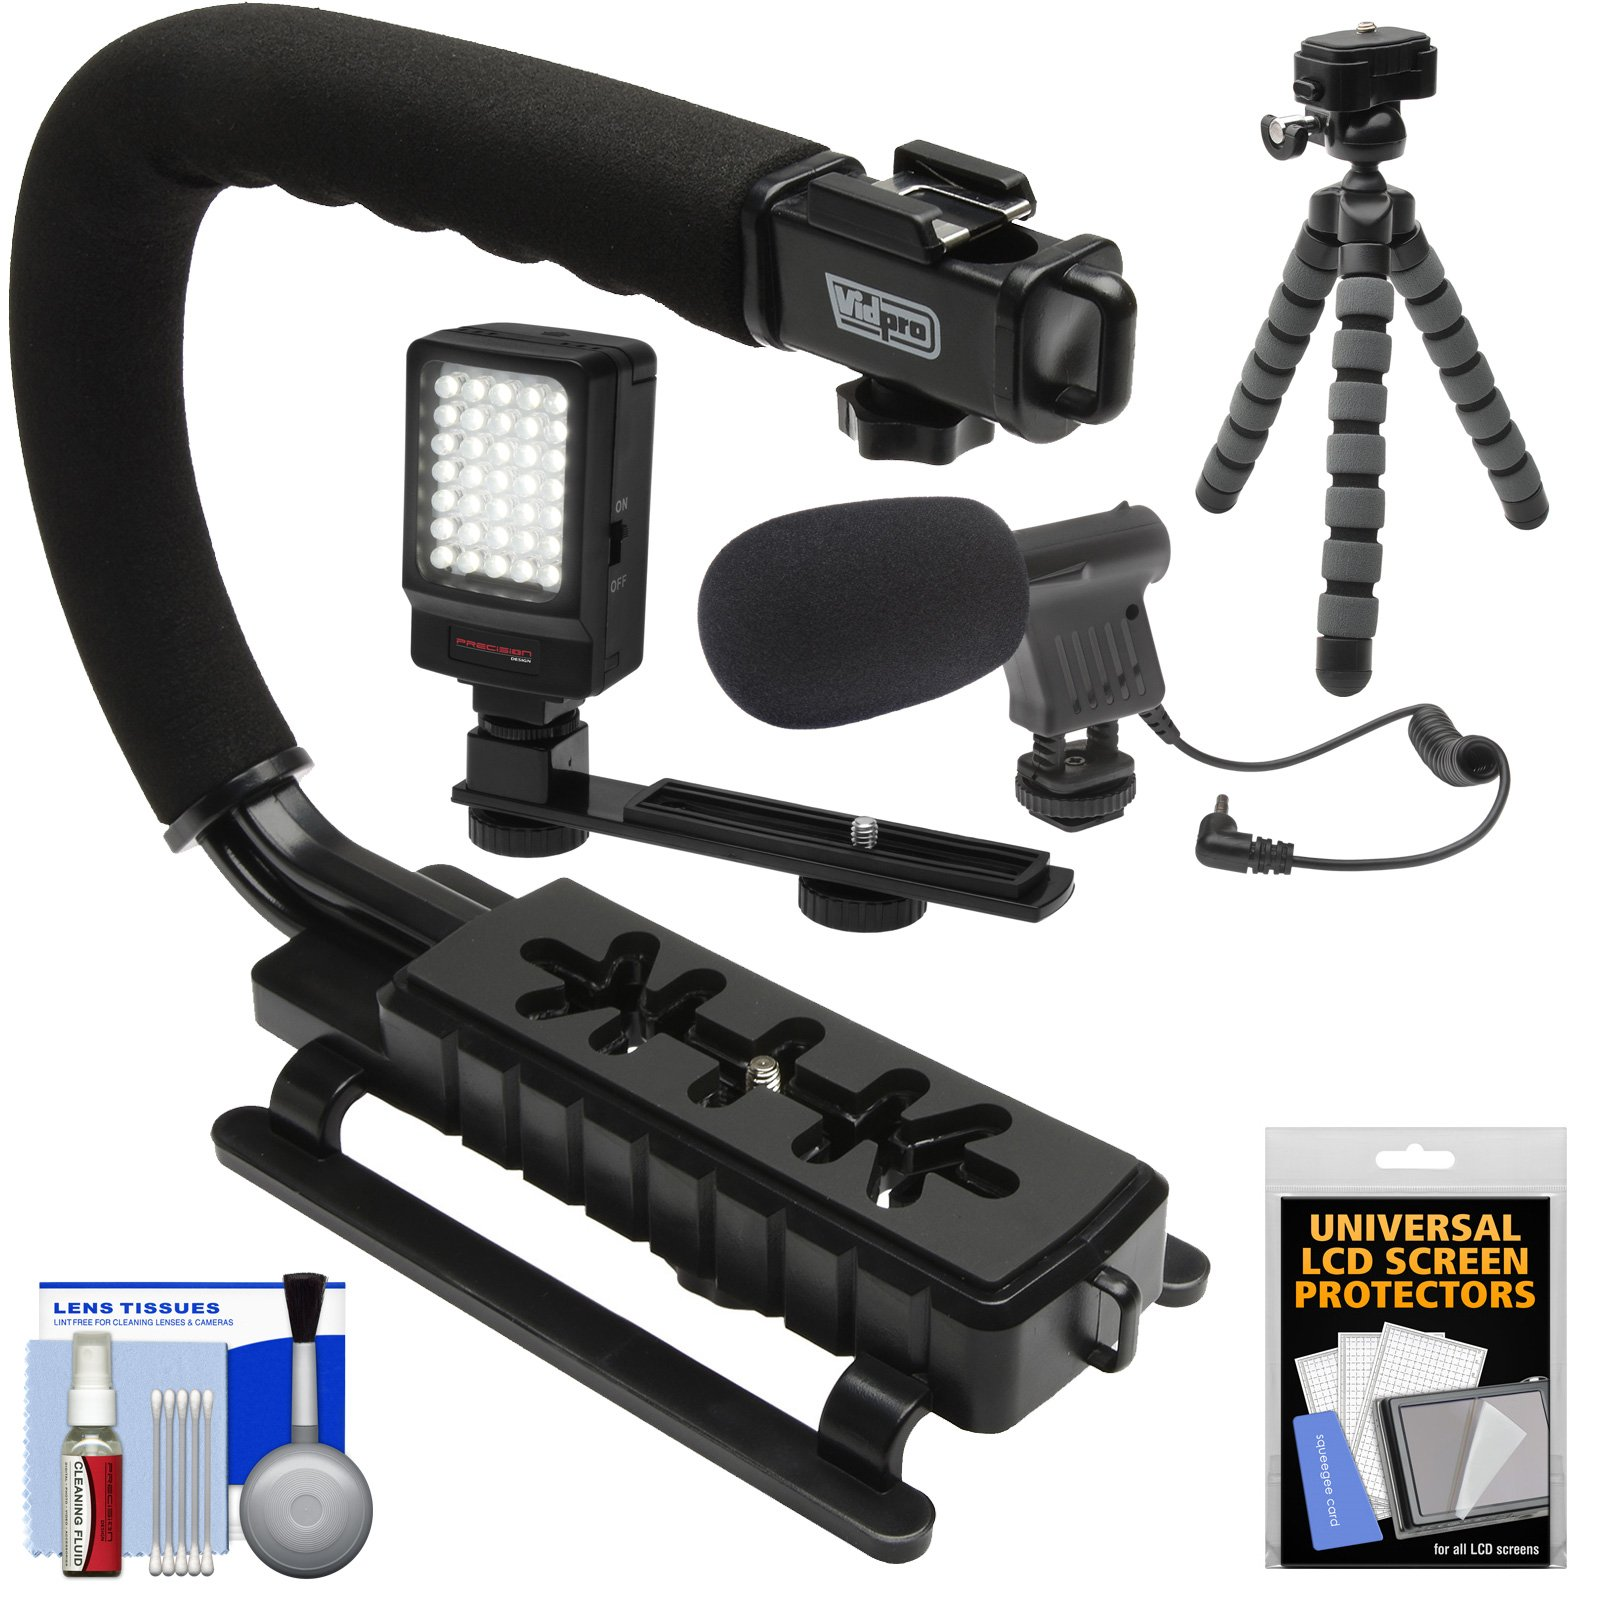 Vidpro VB-12 Stabilizer Hand Grip for DSLR Cameras, Video Camcorders & Action Cameras with Microphone + Flex Tripod + Kit by VidPro